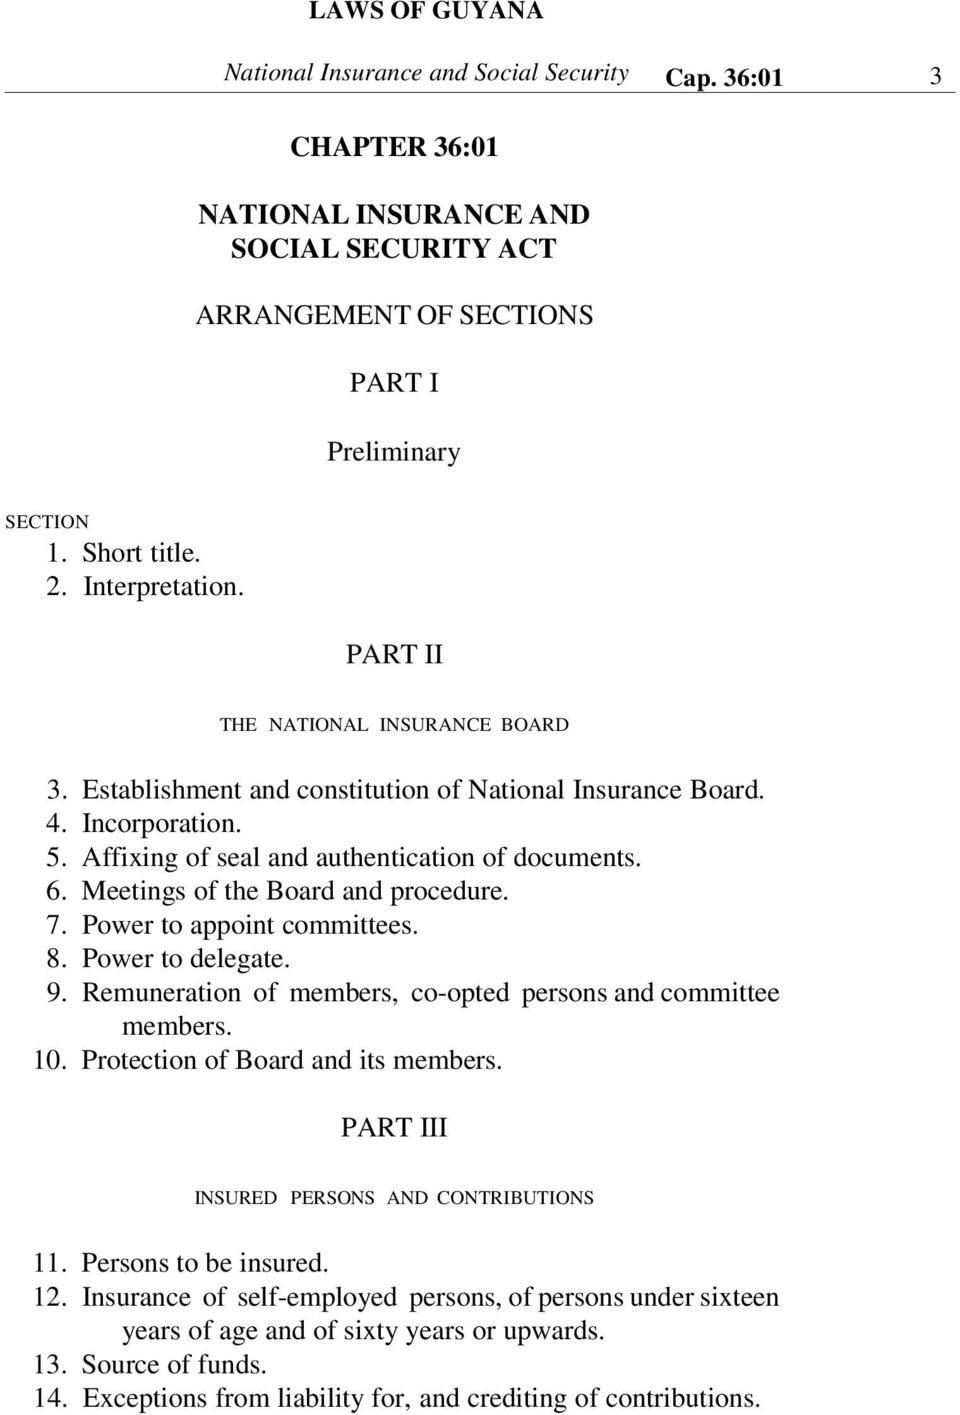 Meetings of the Board and procedure. 7. Power to appoint committees. 8. Power to delegate. 9. Remuneration of members, co-opted persons and committee members. 10. Protection of Board and its members.